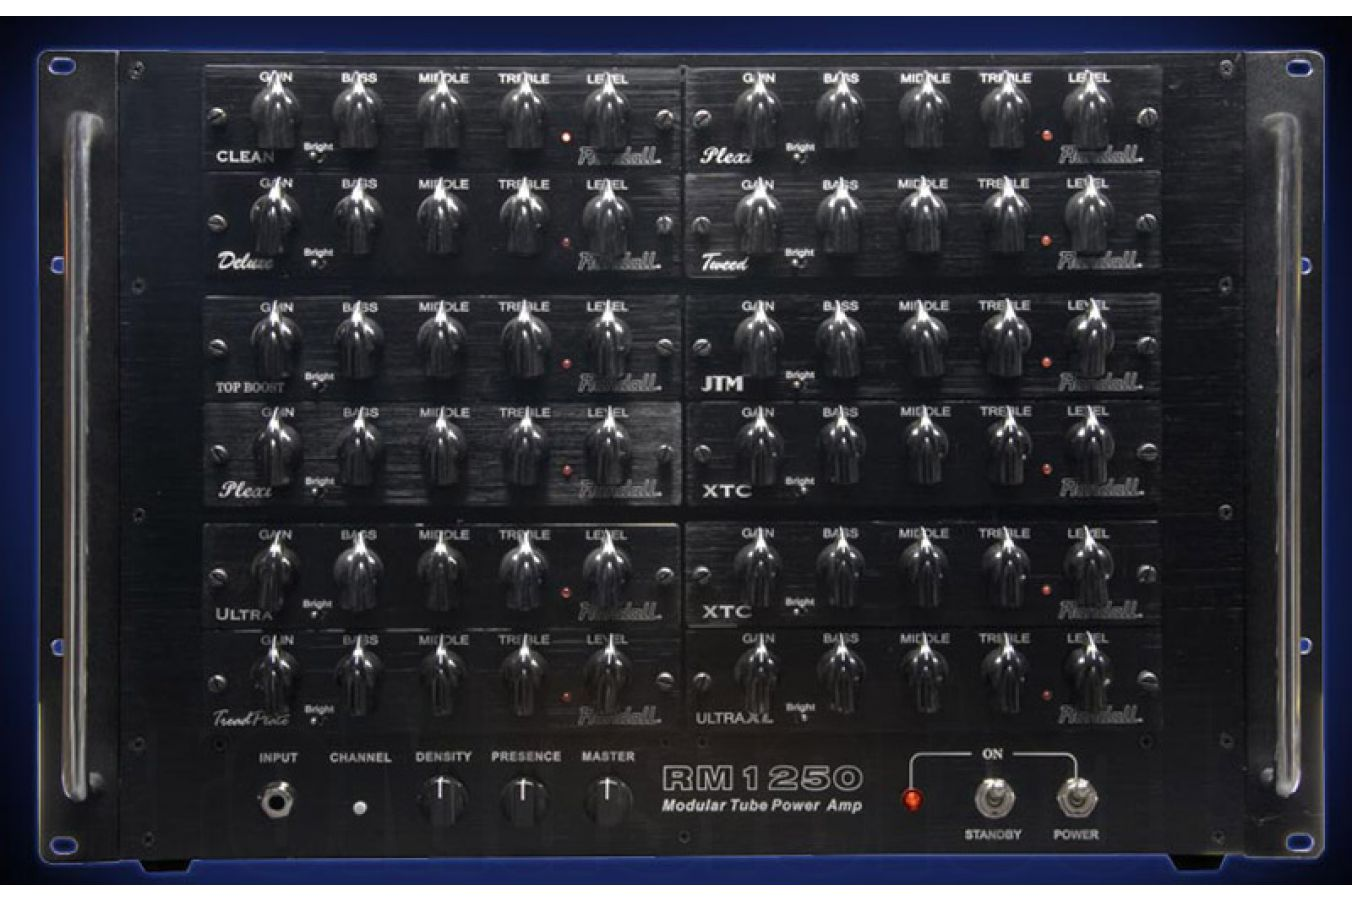 Randall USA RM1250 MTS Power Amp (excl. modules)